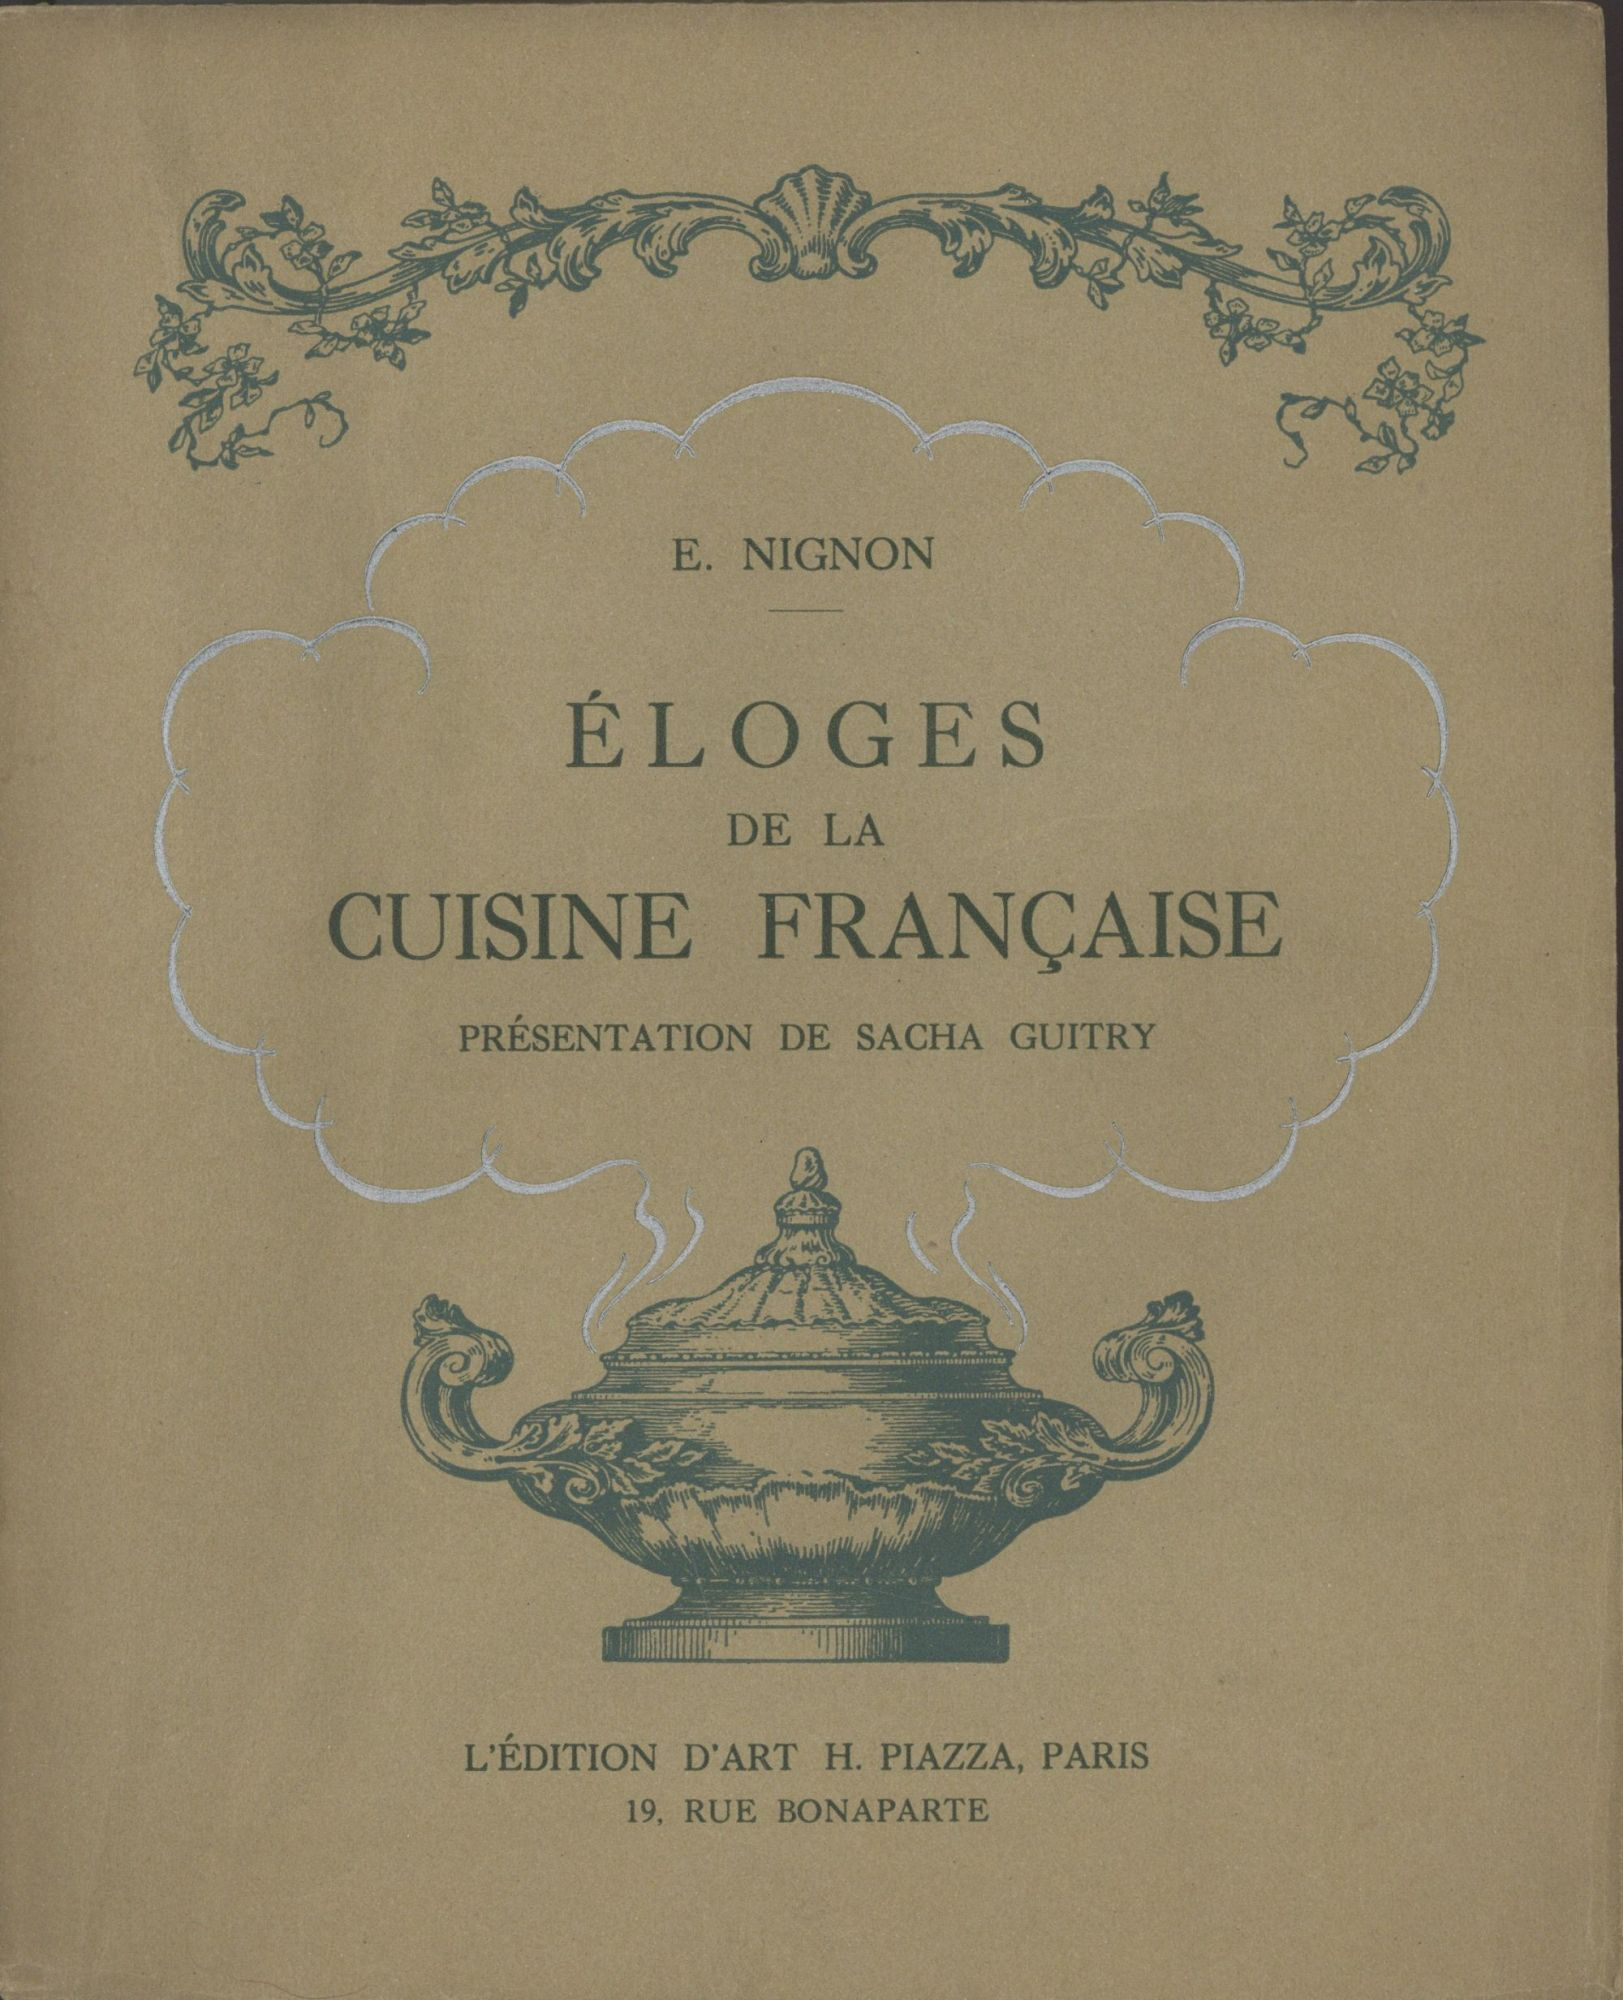 Eloges De La Cuisine Francaise Presentation De Sacha Guitry